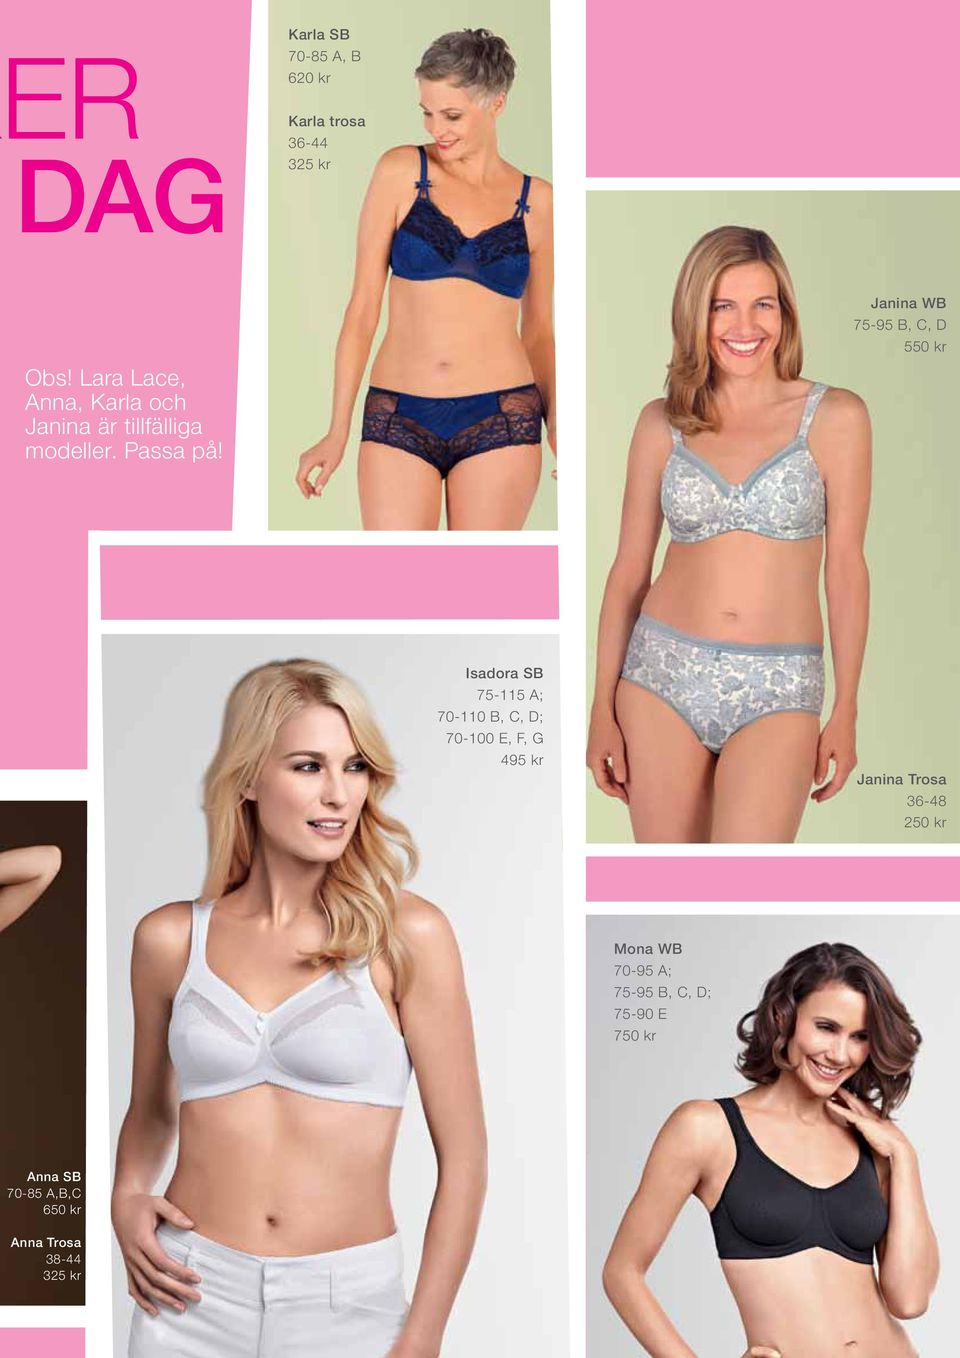 Janina WB 75-95 B, C, D 550 kr Renee, breast cancer survivor Isadora SB 75-115 A; 70-110 B, C, D;